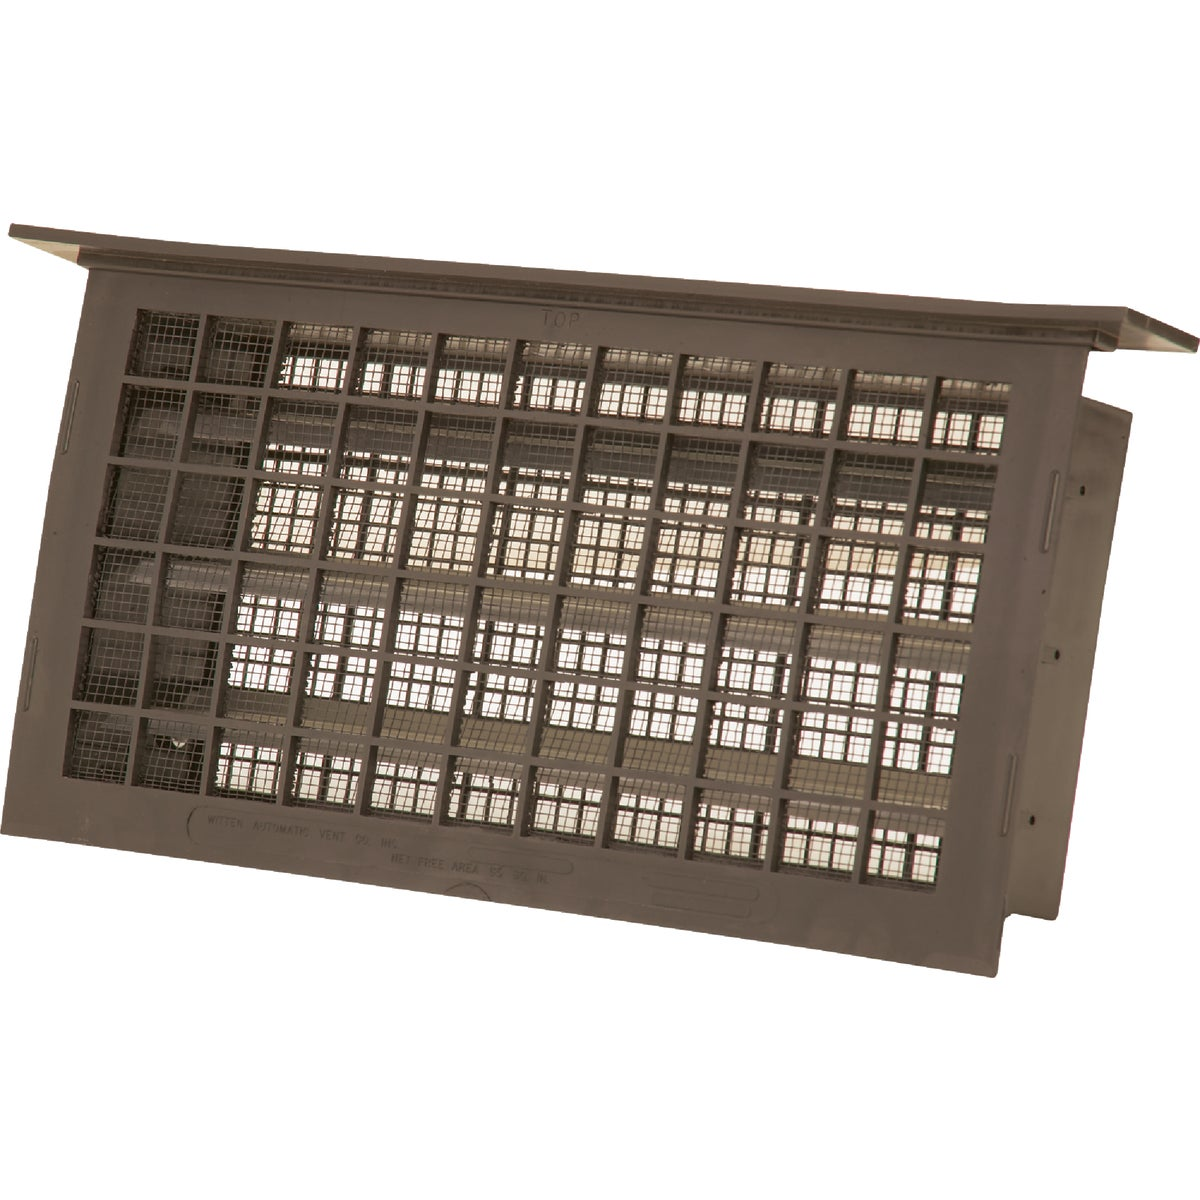 BRN AUTO FOUNDATION VENT - 304LBR by Witten Automatic Vnt